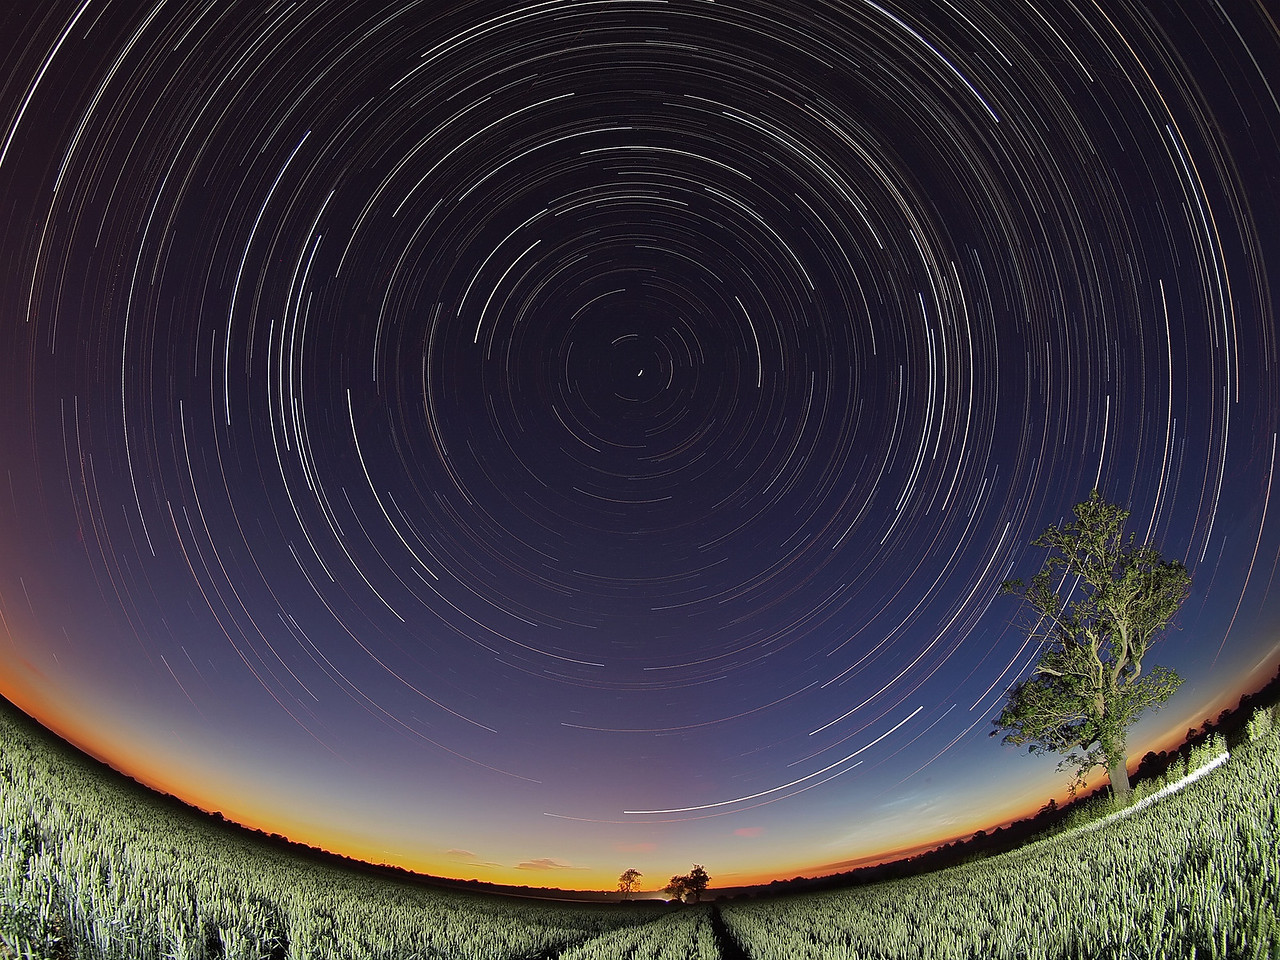 June 30/July 01 2011. I think this is my best fisheye startrail to date. Worked out great with polaris bang in the middle. I gave the image more natural composition by offsetting the tree as the foreground subject, lit with few flash bursts. Just see the horizon noctilucent making an appearance too bottom right. Captured with Oly E5 & 8mm fisheye. Approx 1000 exposures at 15s, ISO 500, F3.5 stacked with startrails software.